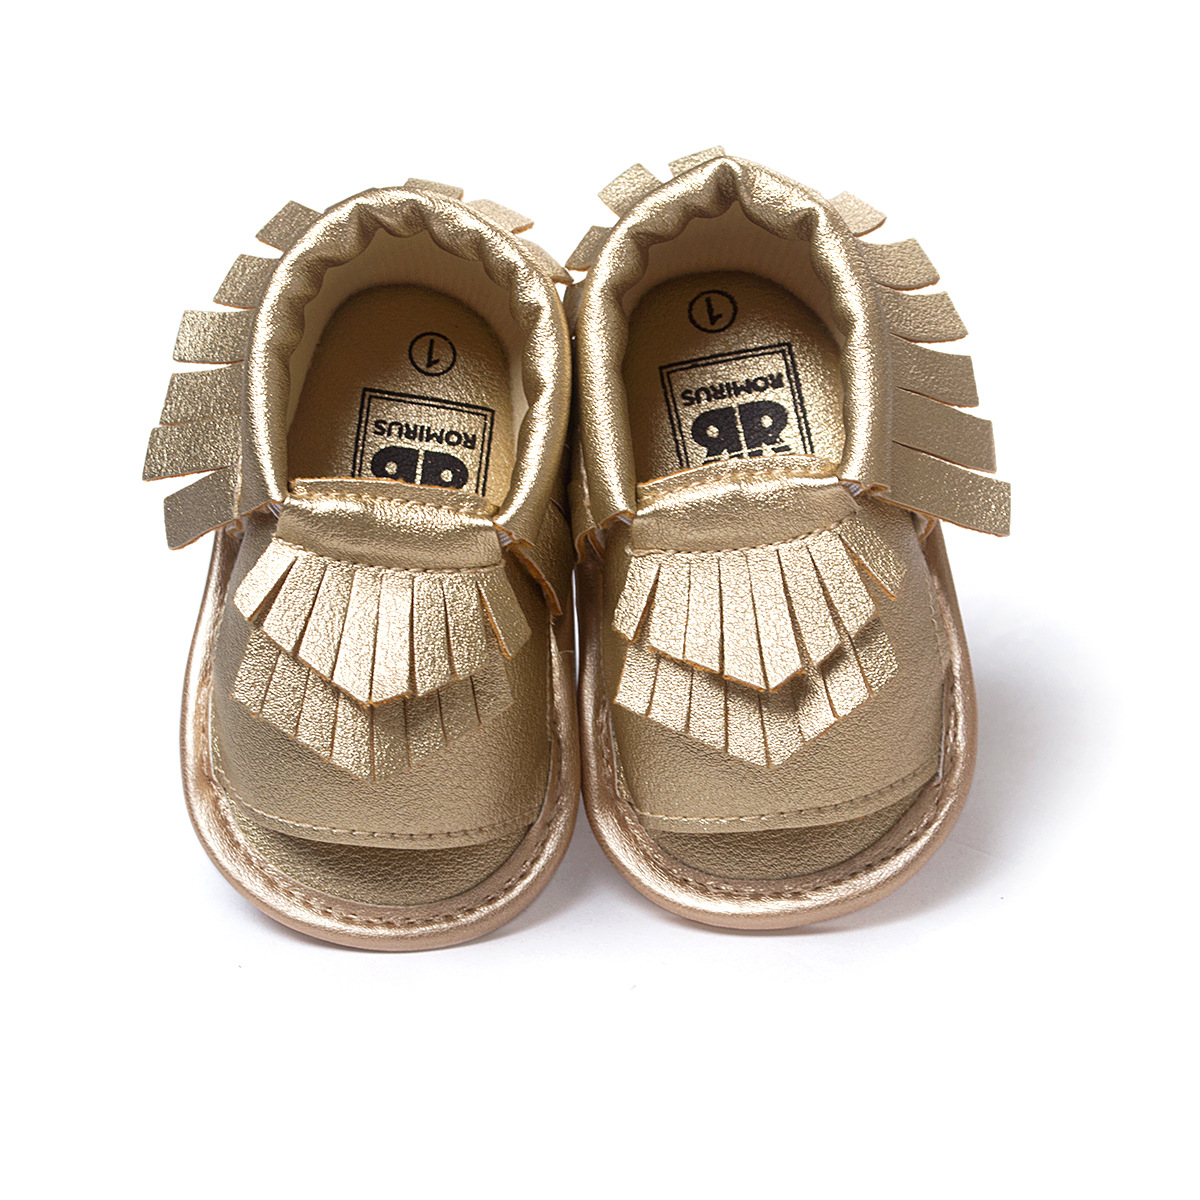 Summer Style 2018 New Designer Baby Moccasins For Newborn Boy Girl Fashion Fringe Boots Rubber Sole Unisex Leather Baby Shoes